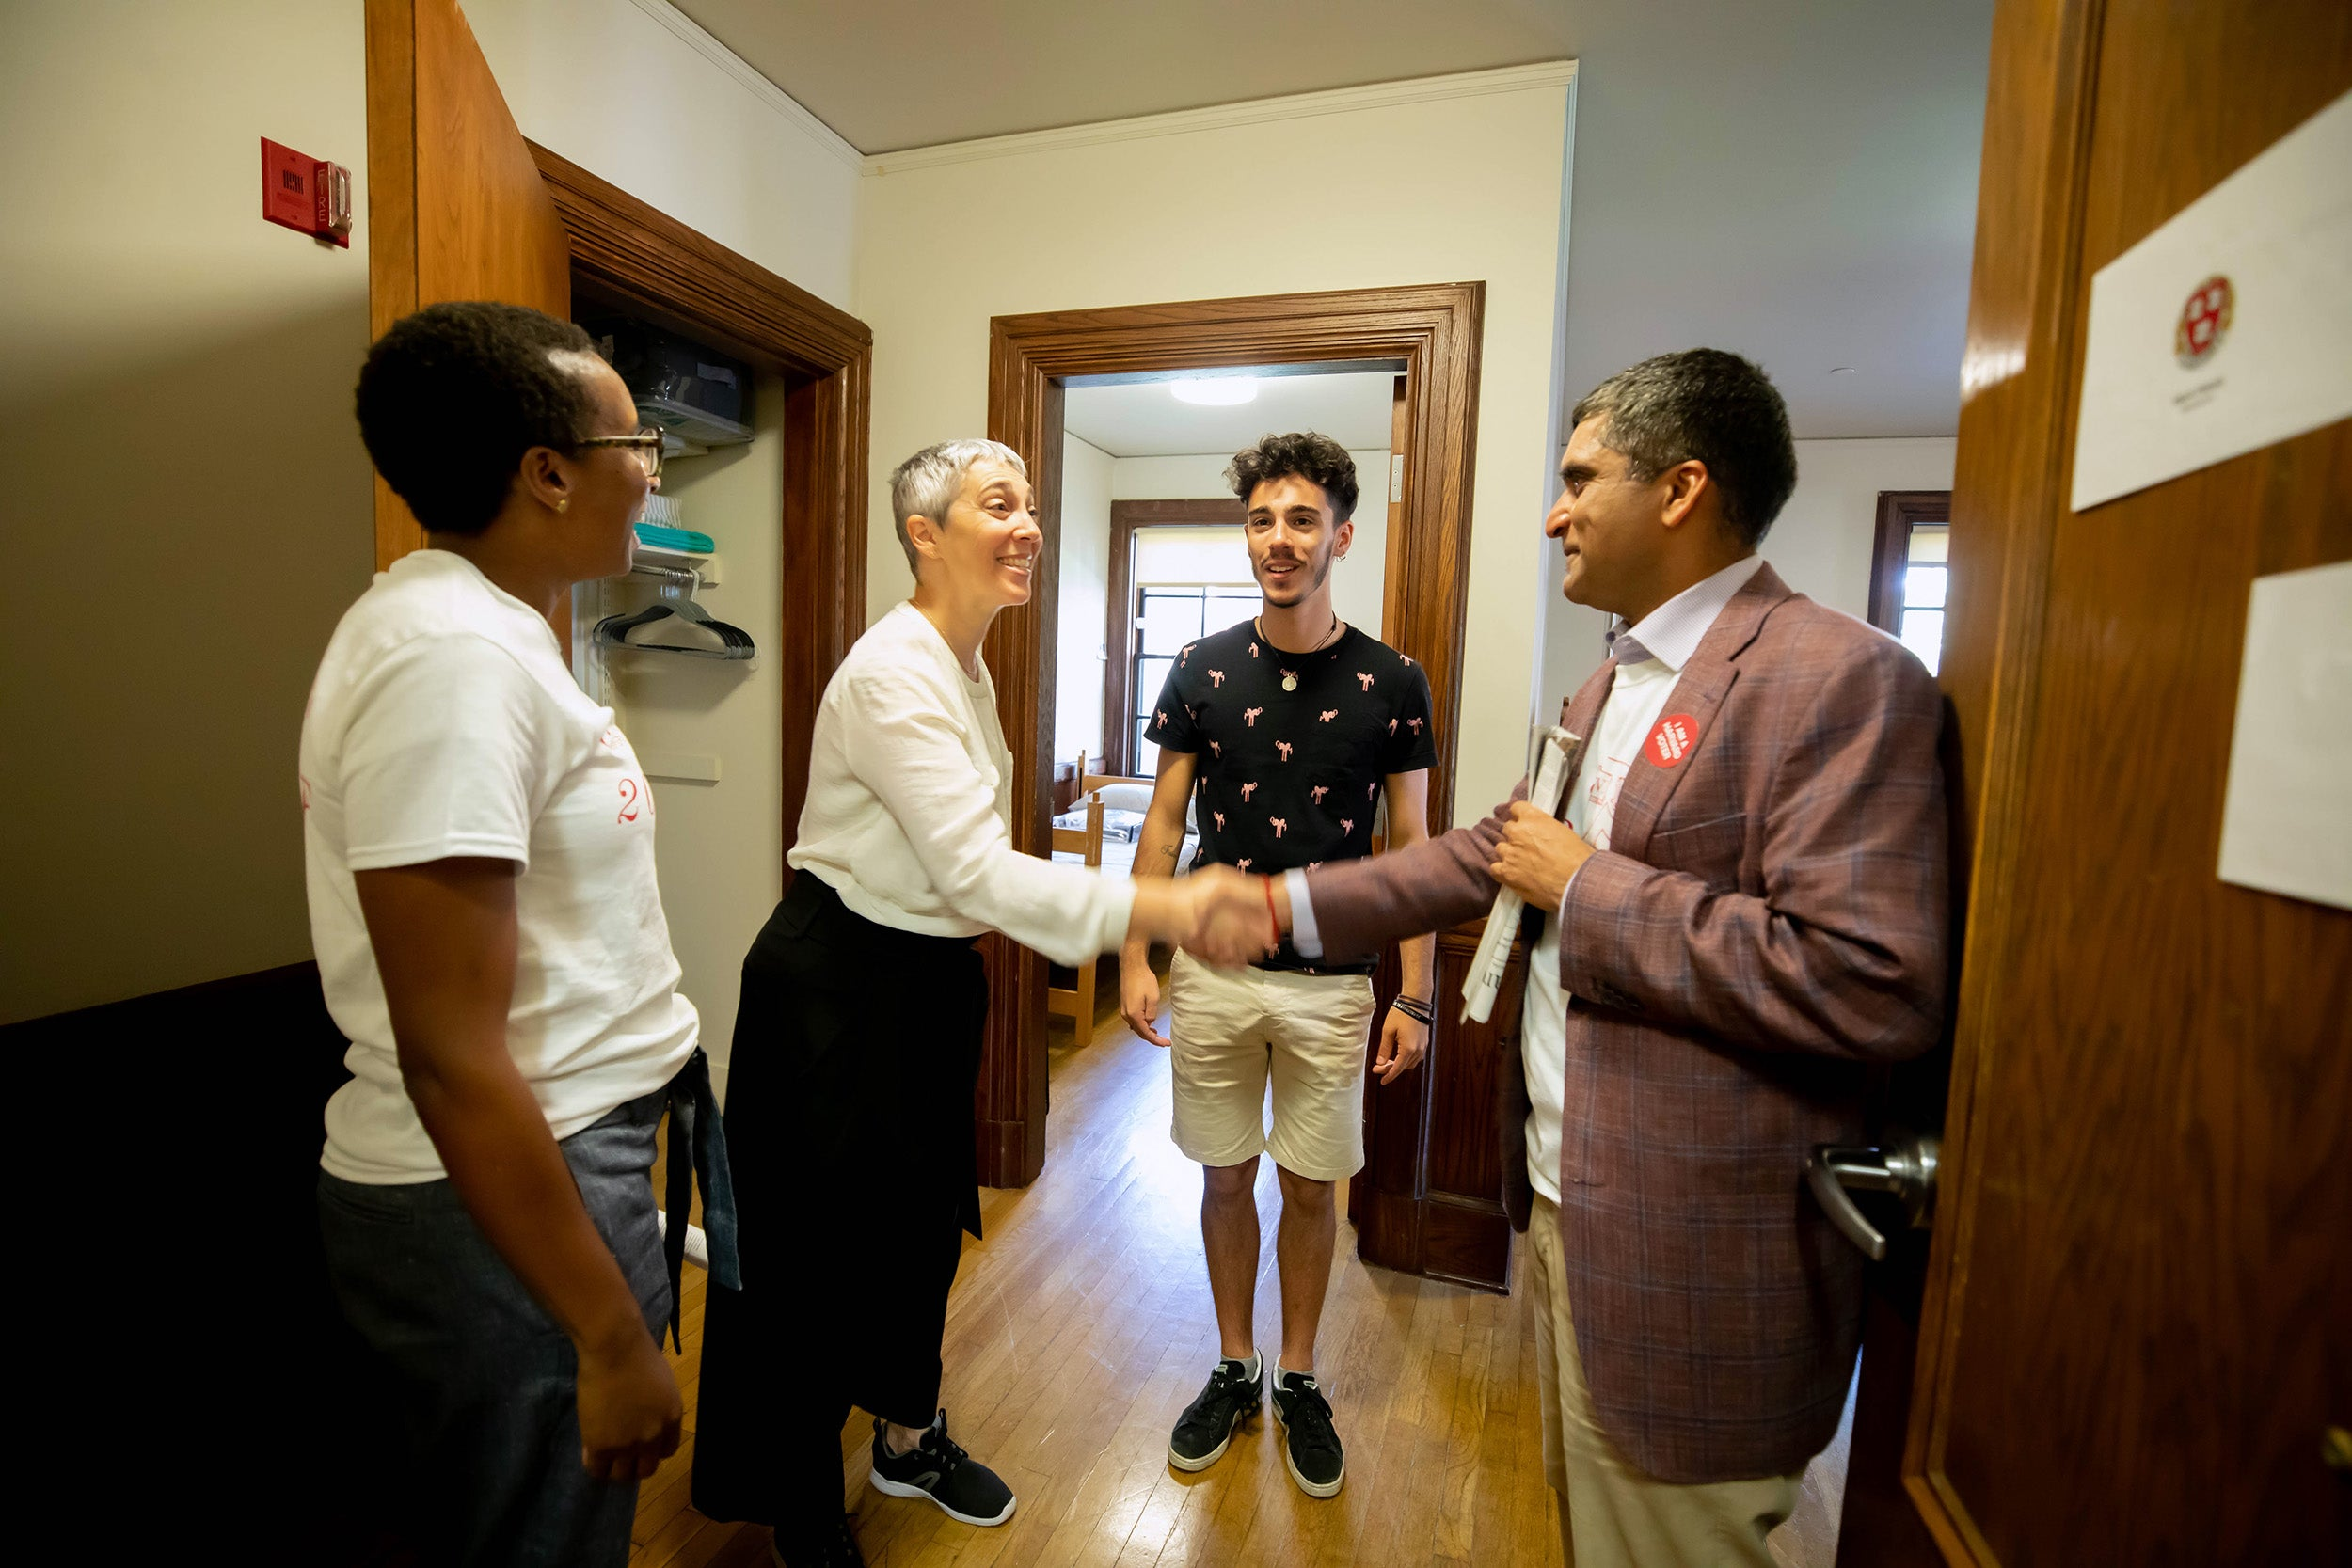 Deans greet a parent and student